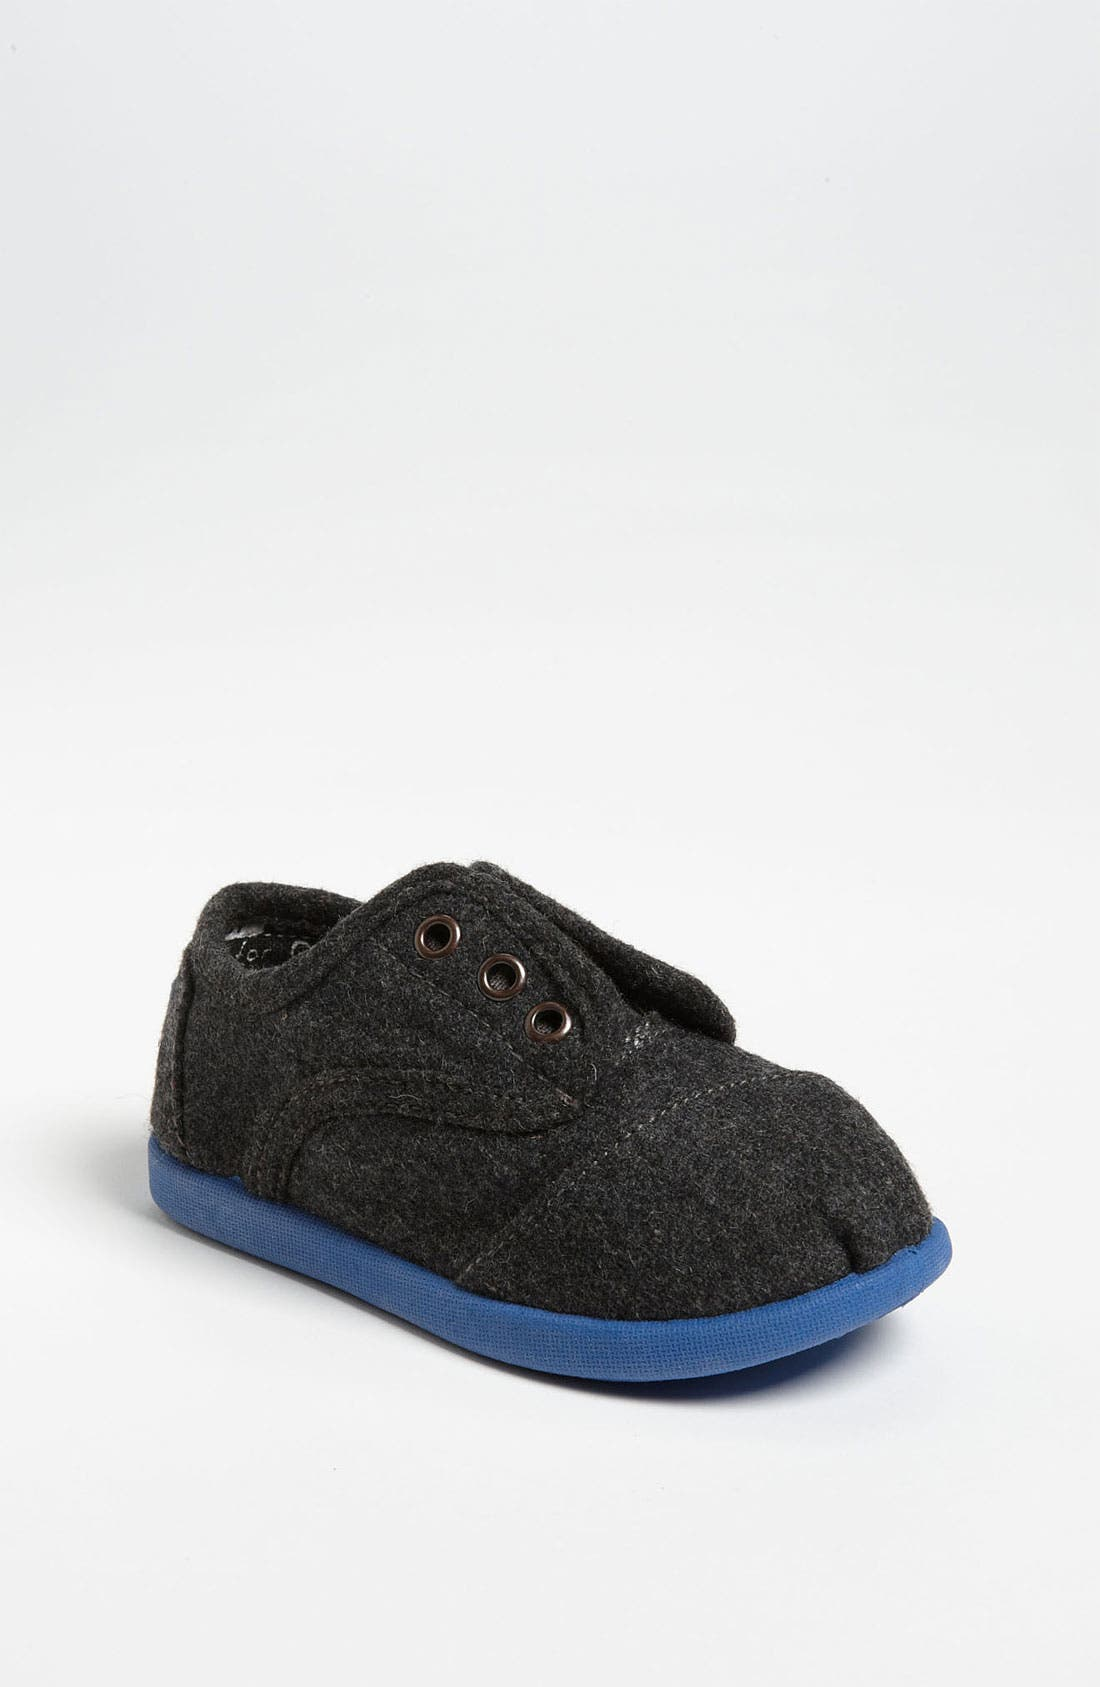 Alternate Image 1 Selected - TOMS 'Cordones - Tiny' Slip-On (Baby, Walker & Toddler)